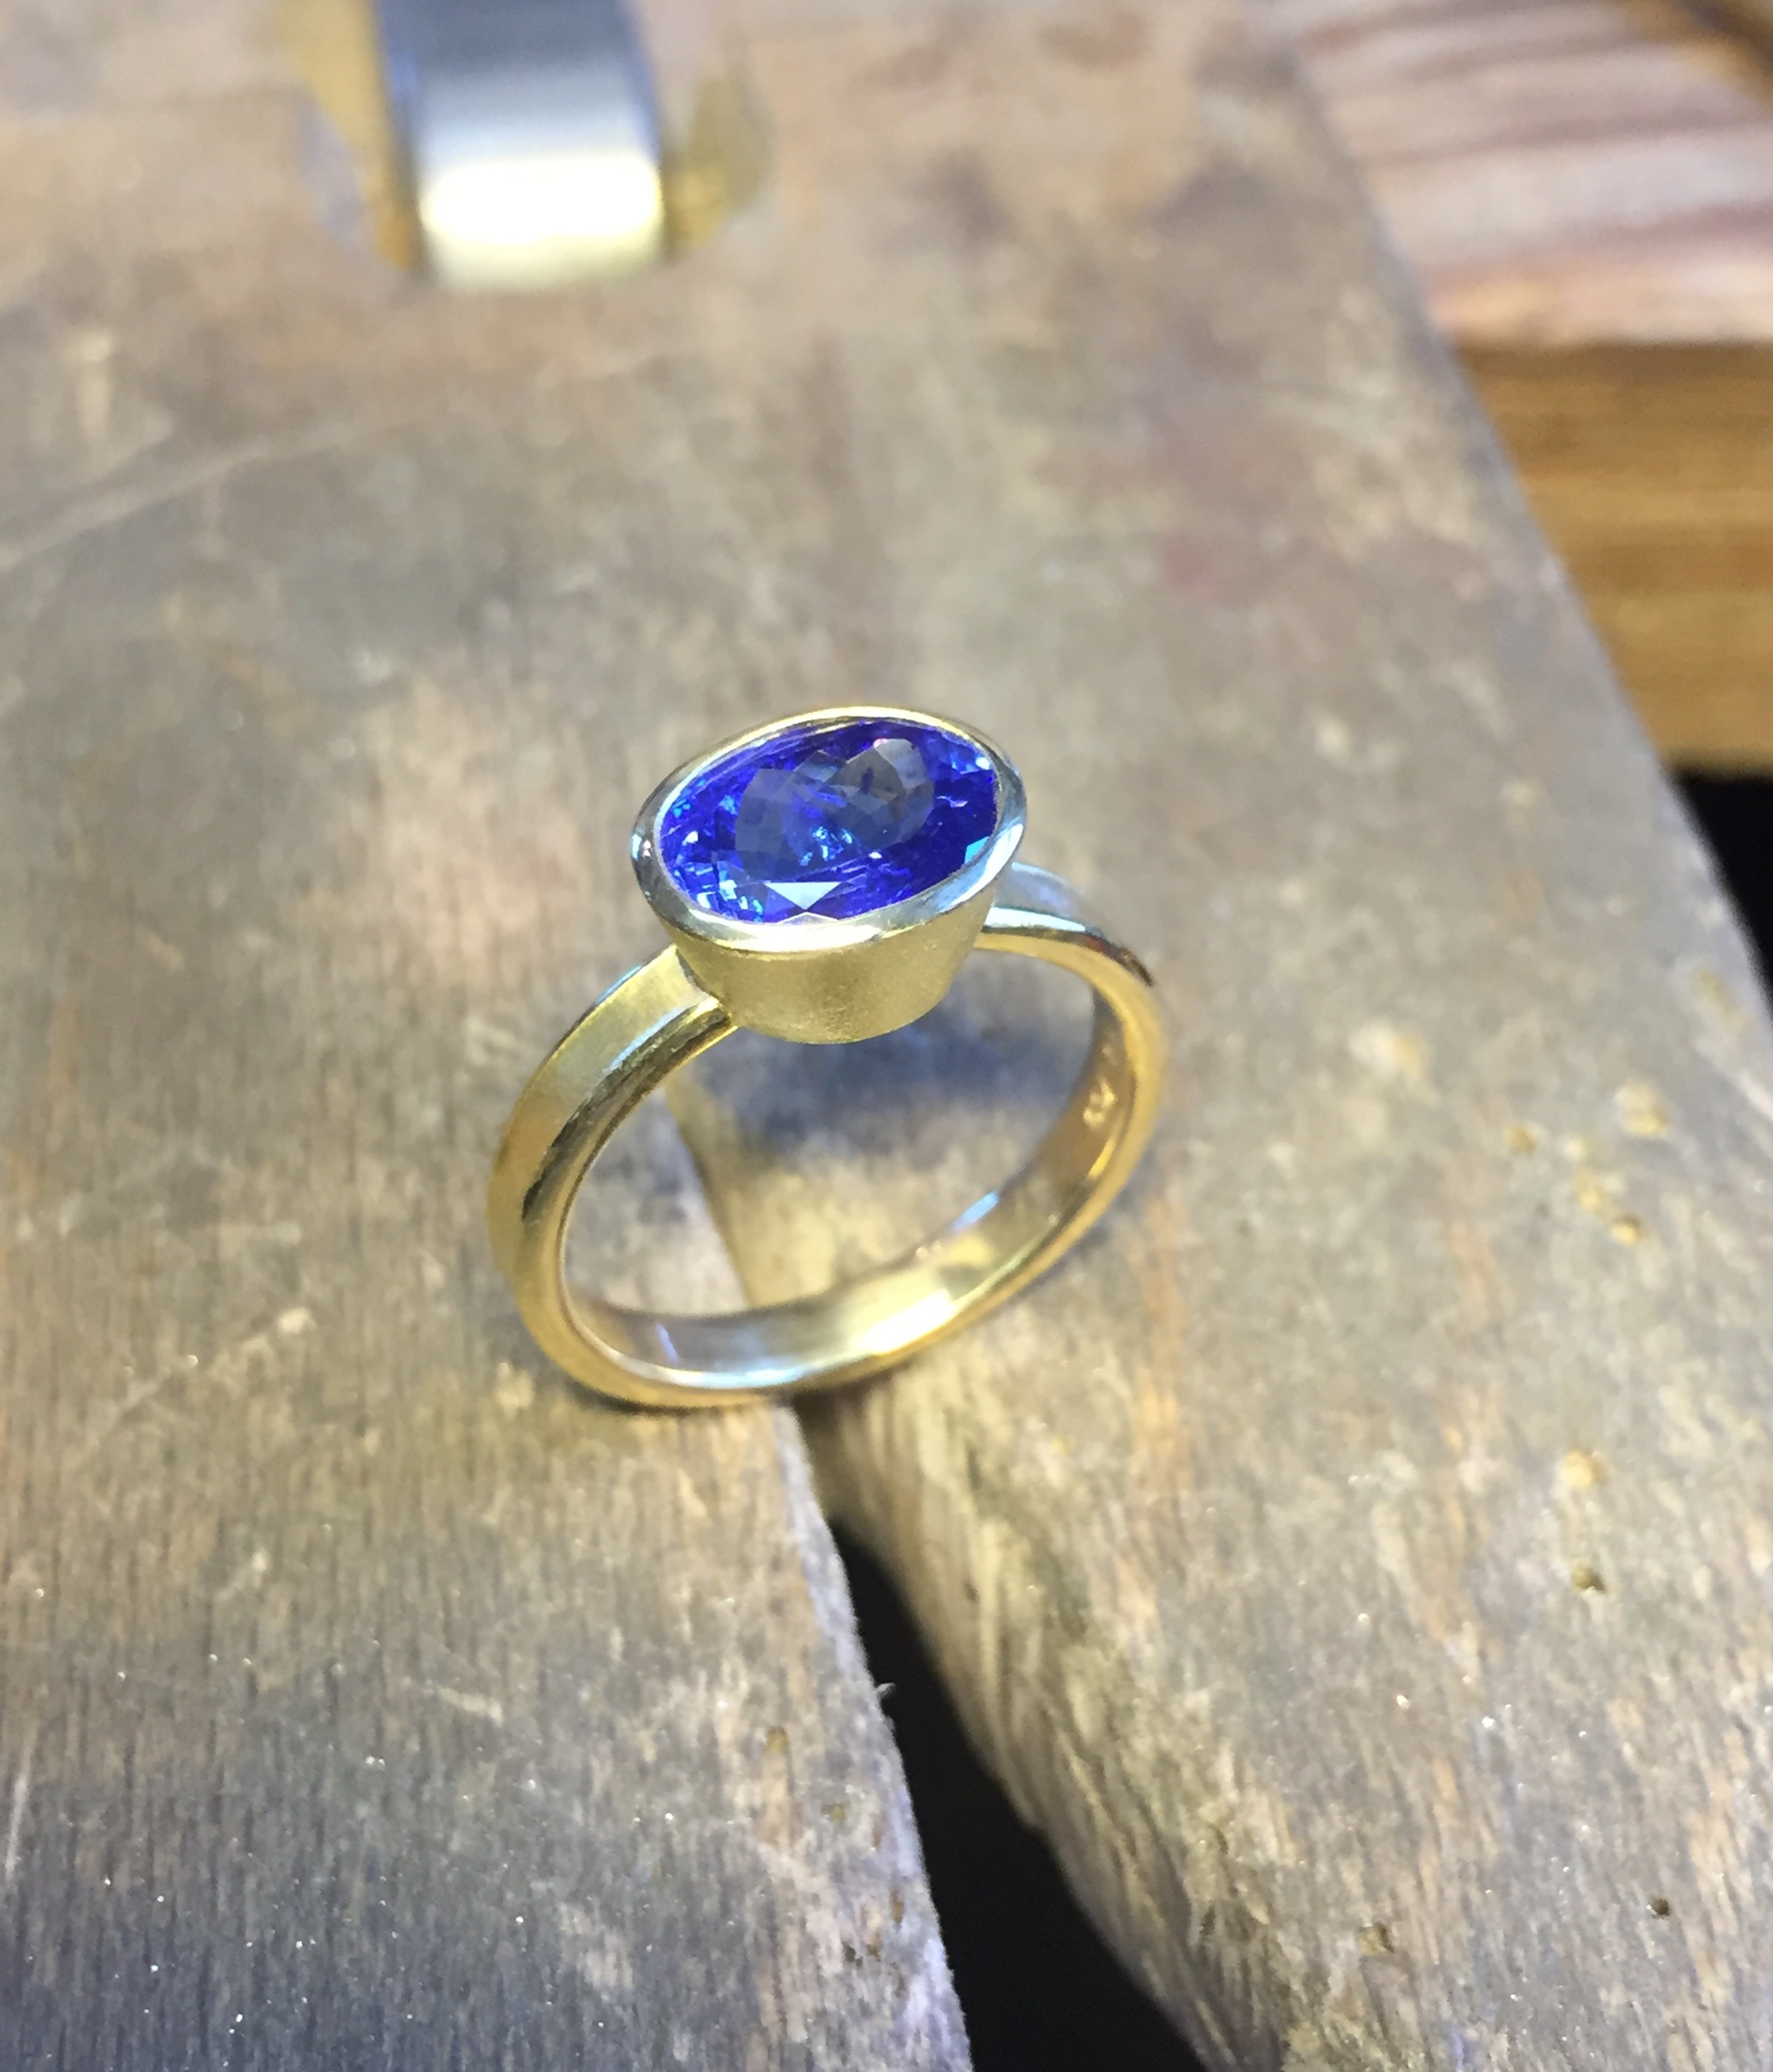 sustainable rings inspirational eco friendly wedding ethical of jewellery sea handmade fairtrade glass